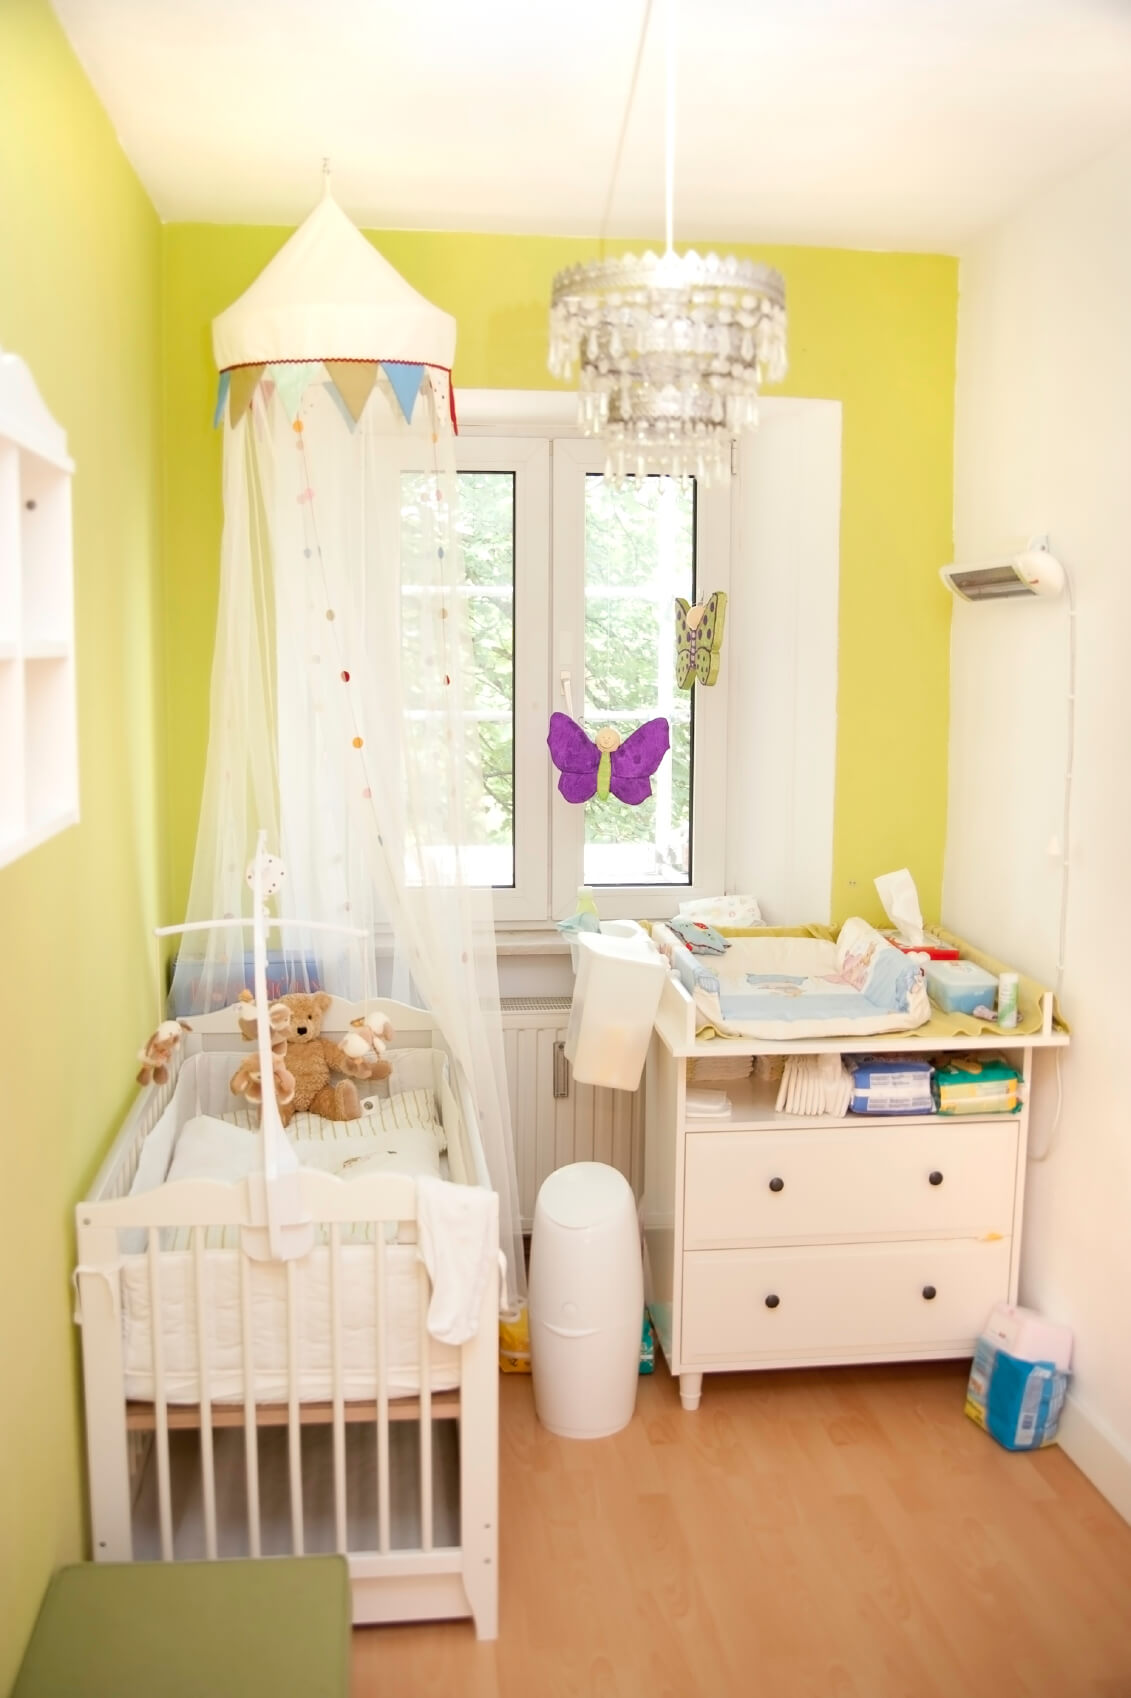 Cozy Nursery Splashed With Bright Yellow Paint On The Walls, Over Natural  Hardwood Flooring,